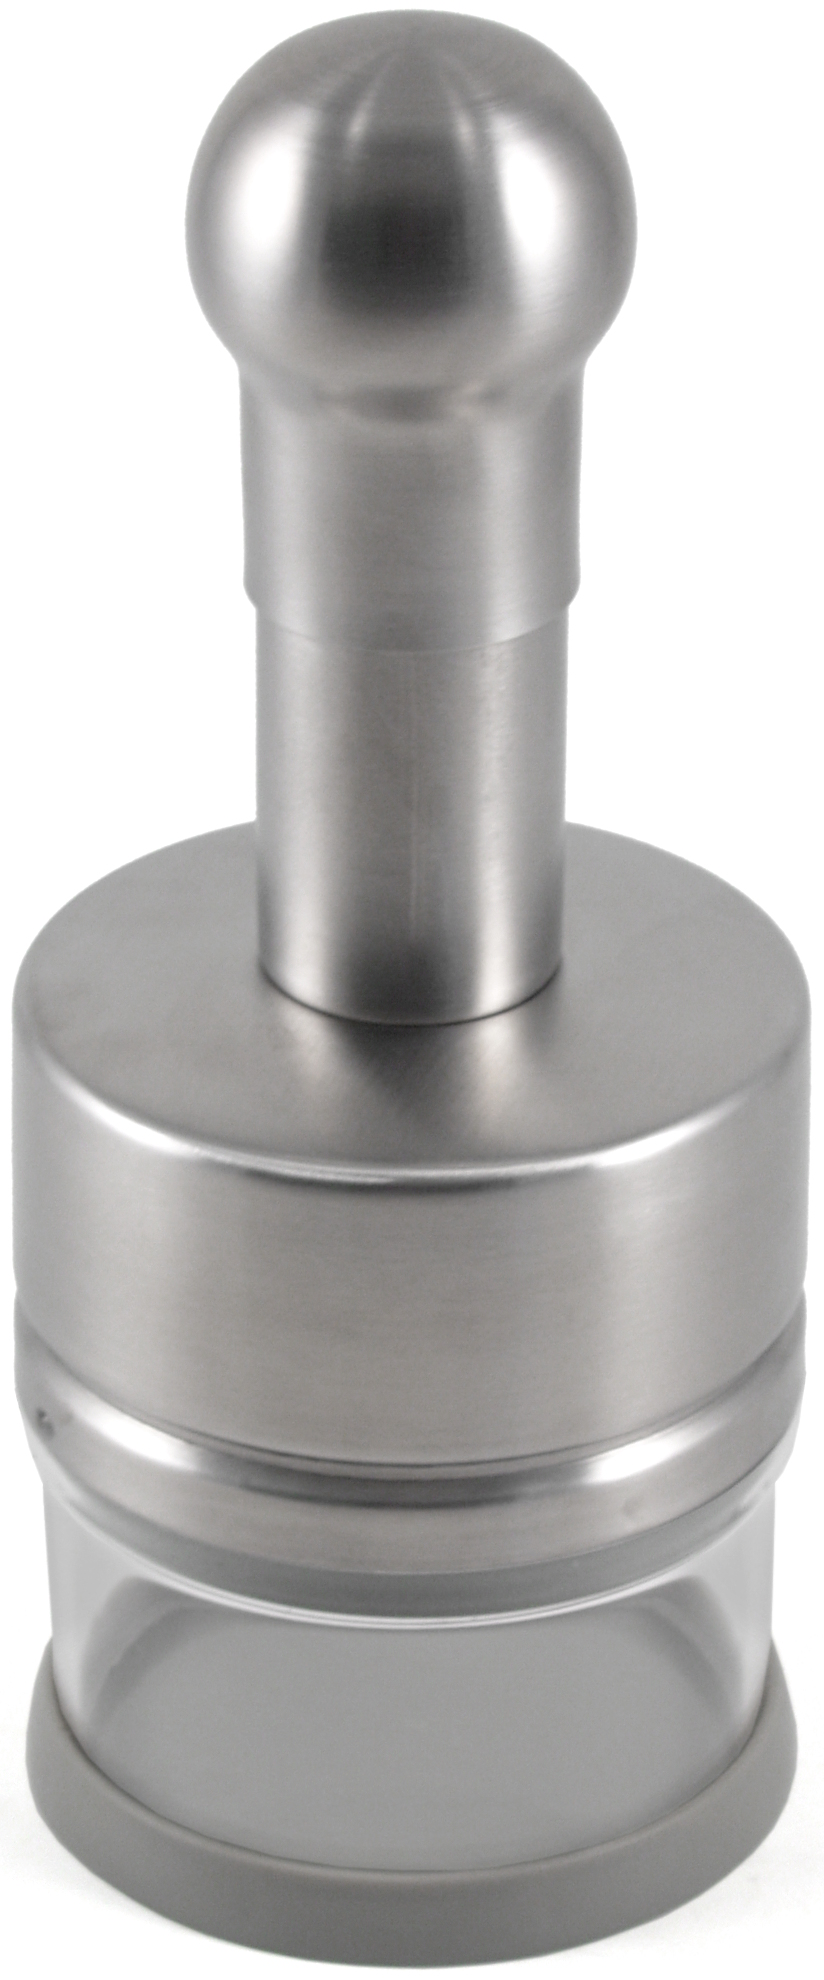 Stainless Steel Deluxe Chopper/Mincer